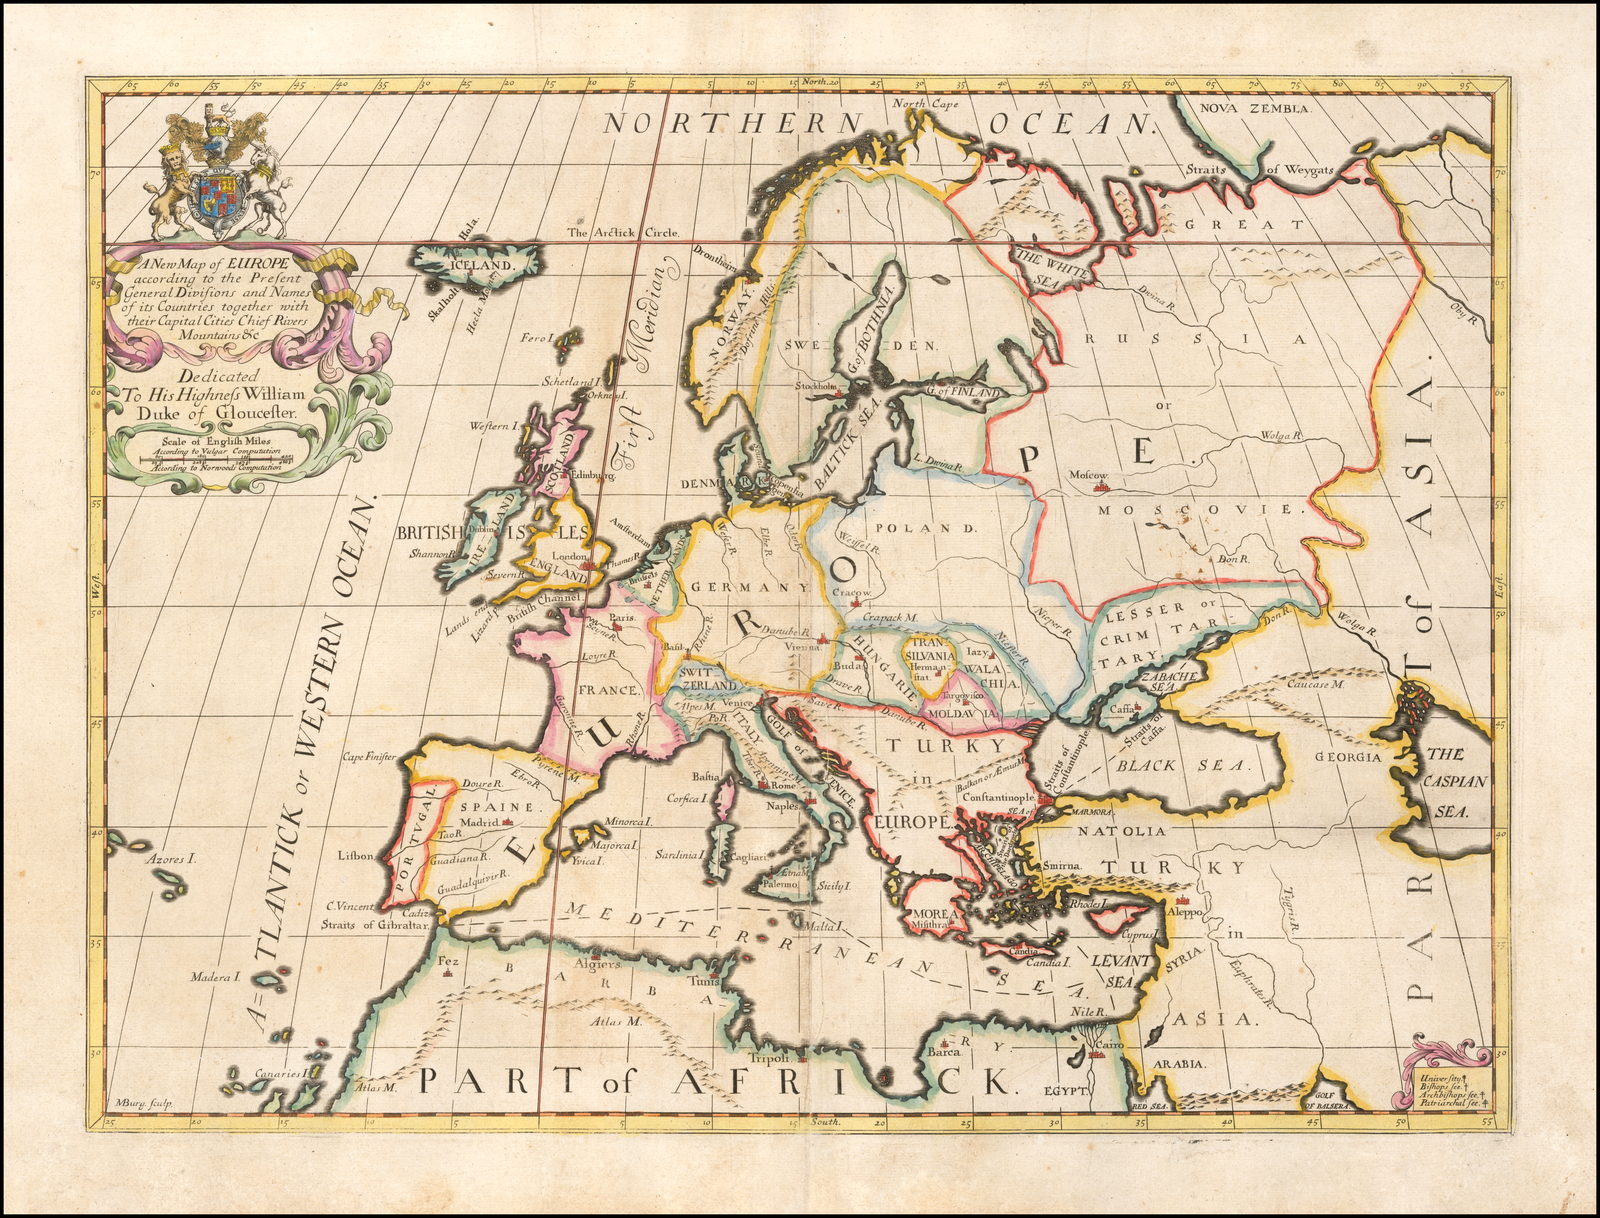 Picture of: A New Map Of Europe According To The Present General Divisions And Names Capital Cities Chief Rivers Mountains C Dedicated To His Highness William Duke Of Glocester Barry Lawrence Ruderman Antique Maps Inc